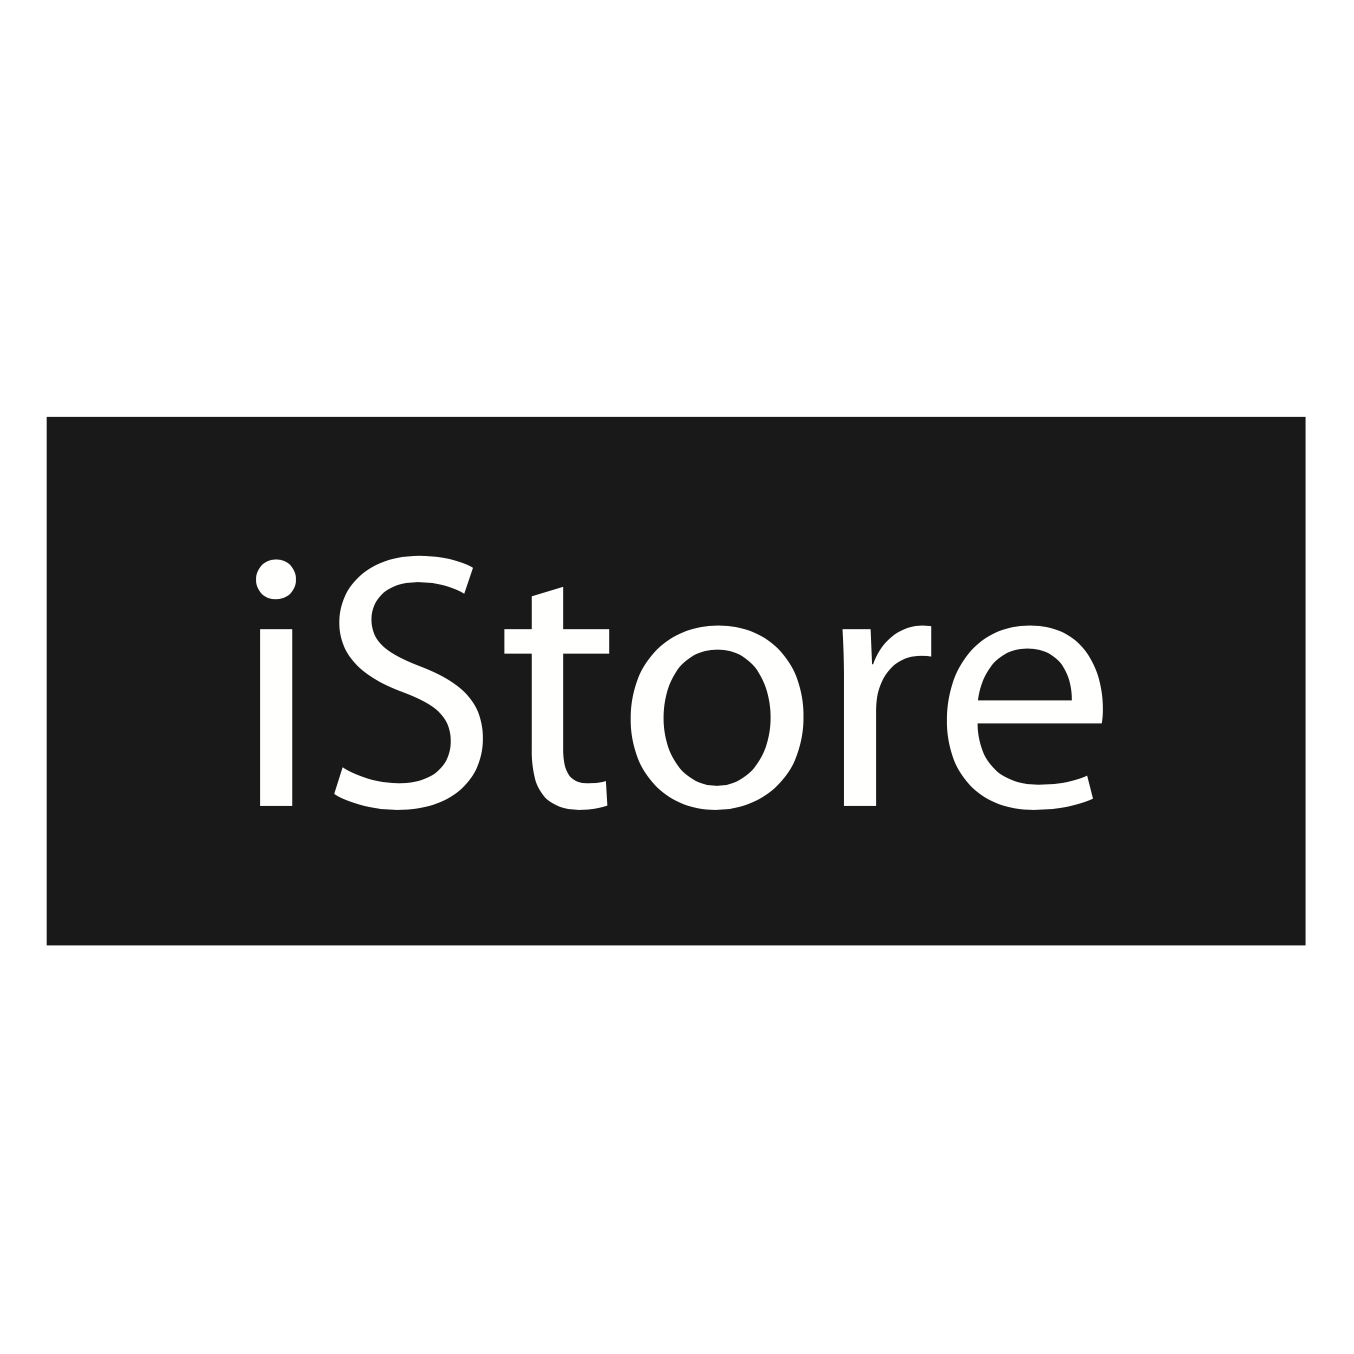 Love is in the air at iStore